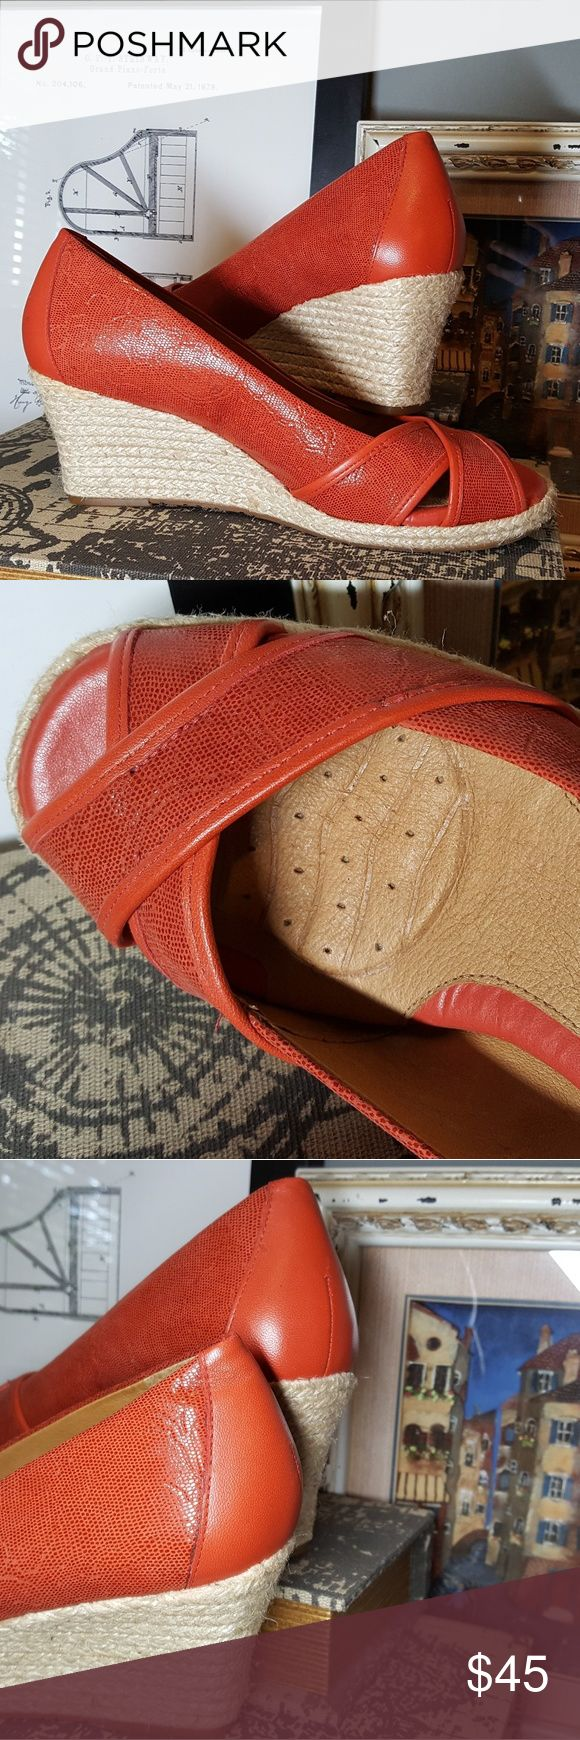 "Nurture Fire Orange 3"" Super Comfy Espadrilles Don't let these pass you by! Fire orange espadrilles by Nurture. These beautes have a cushioned, supportive, textured  sole that is heaven to wear. Look at the pics to see it! They are in excellent condition (reposh). I have never worn them, as they are too small for me.   Real leather, with subtle patent texturing and floral embossing. Gorgeous, and great for Fall.   No smoke, no pets!! Offer me some dollars and get the most comfortable pair of…"